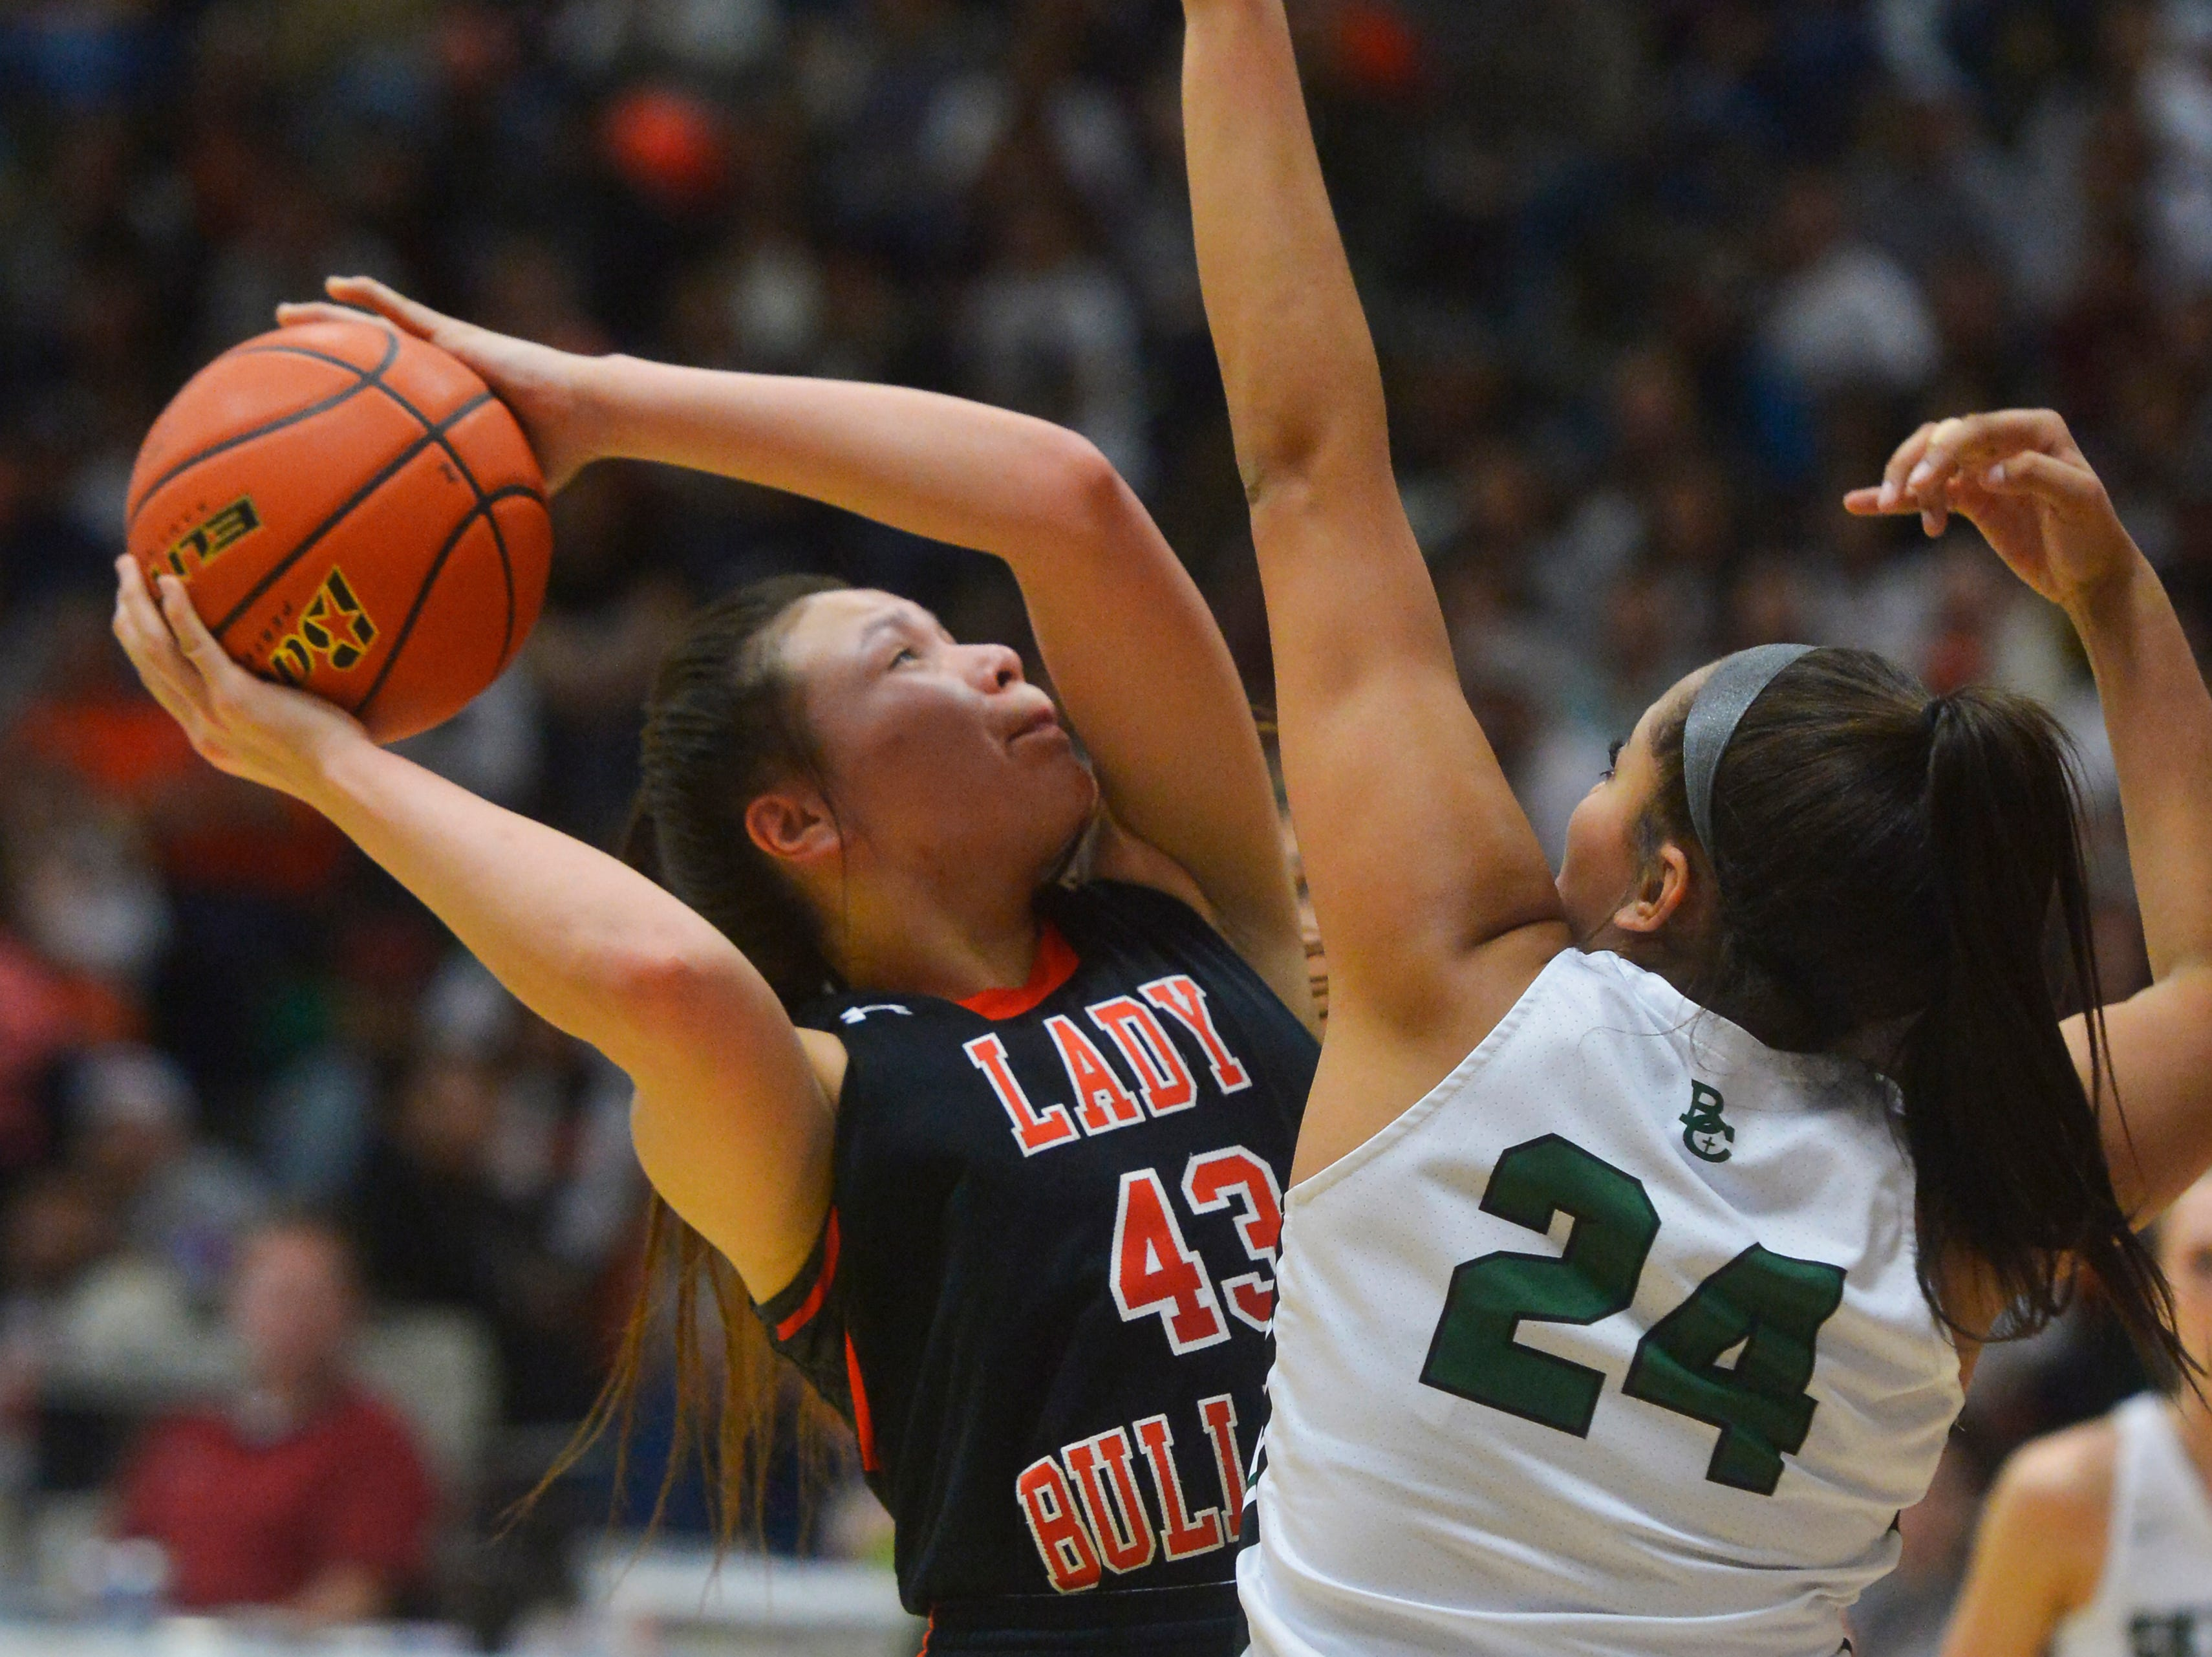 Hardin's Marie Five attempts a shot as Billings Central's Olivia Moten-Schell defends in the girls semifinal game of the State Class A Basketball Tournament in the Four Seasons Arena, Friday.